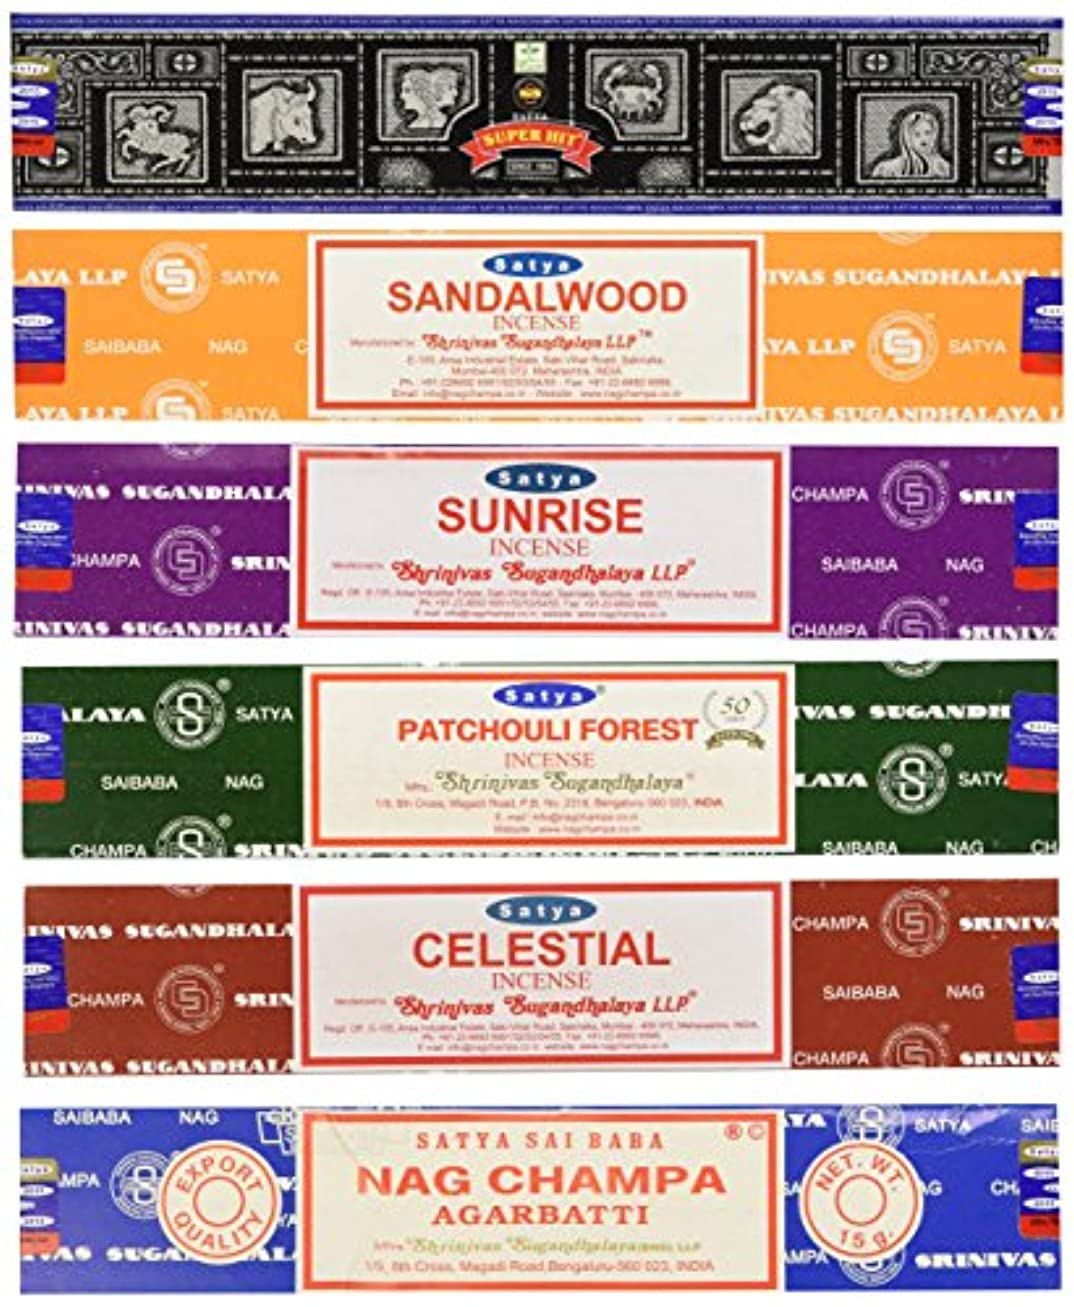 かび臭いイチゴジェームズダイソンSet of 6 Nag Champa Sunrise Sandalwood Patchouli Celestial Super Hit by Satya